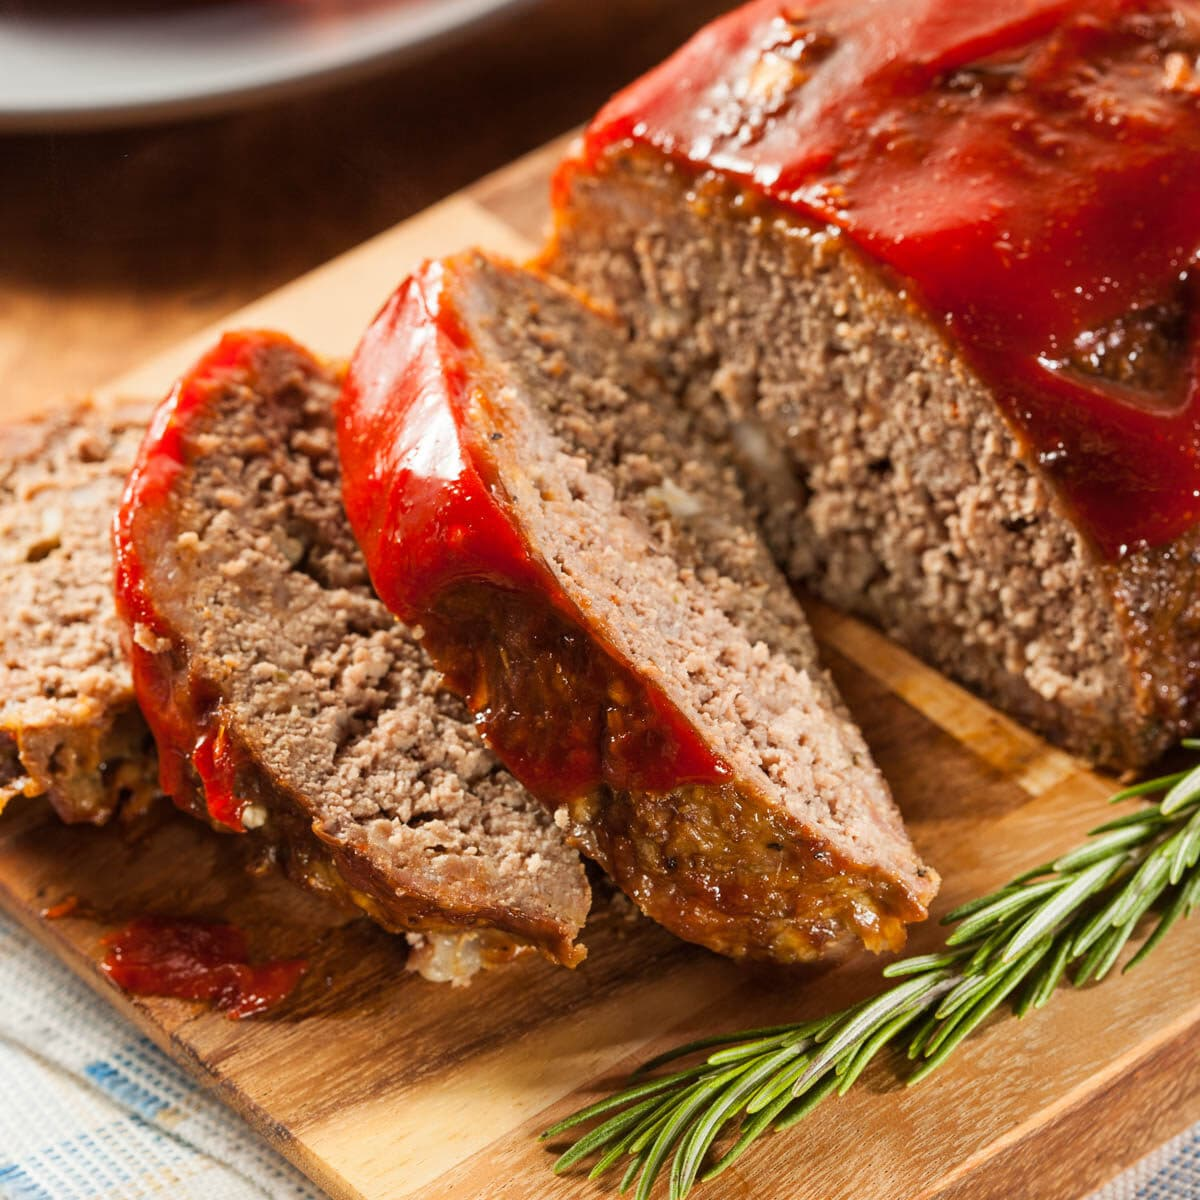 Meatloaf on a cutting board with 3 cut slices